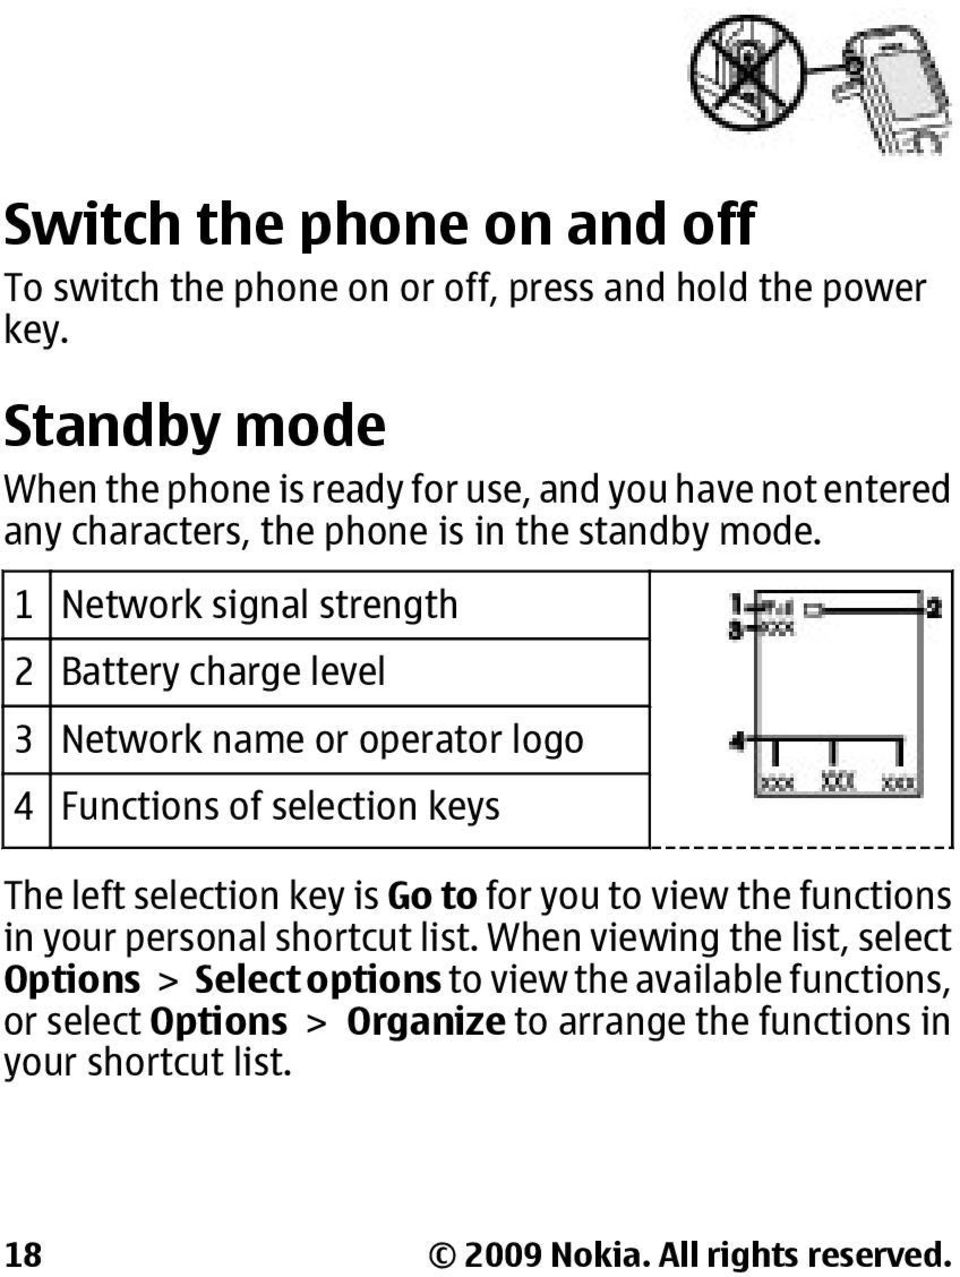 1 Network signal strength 2 Battery charge level 3 Network name or operator logo 4 Functions of selection keys The left selection key is Go to for you to